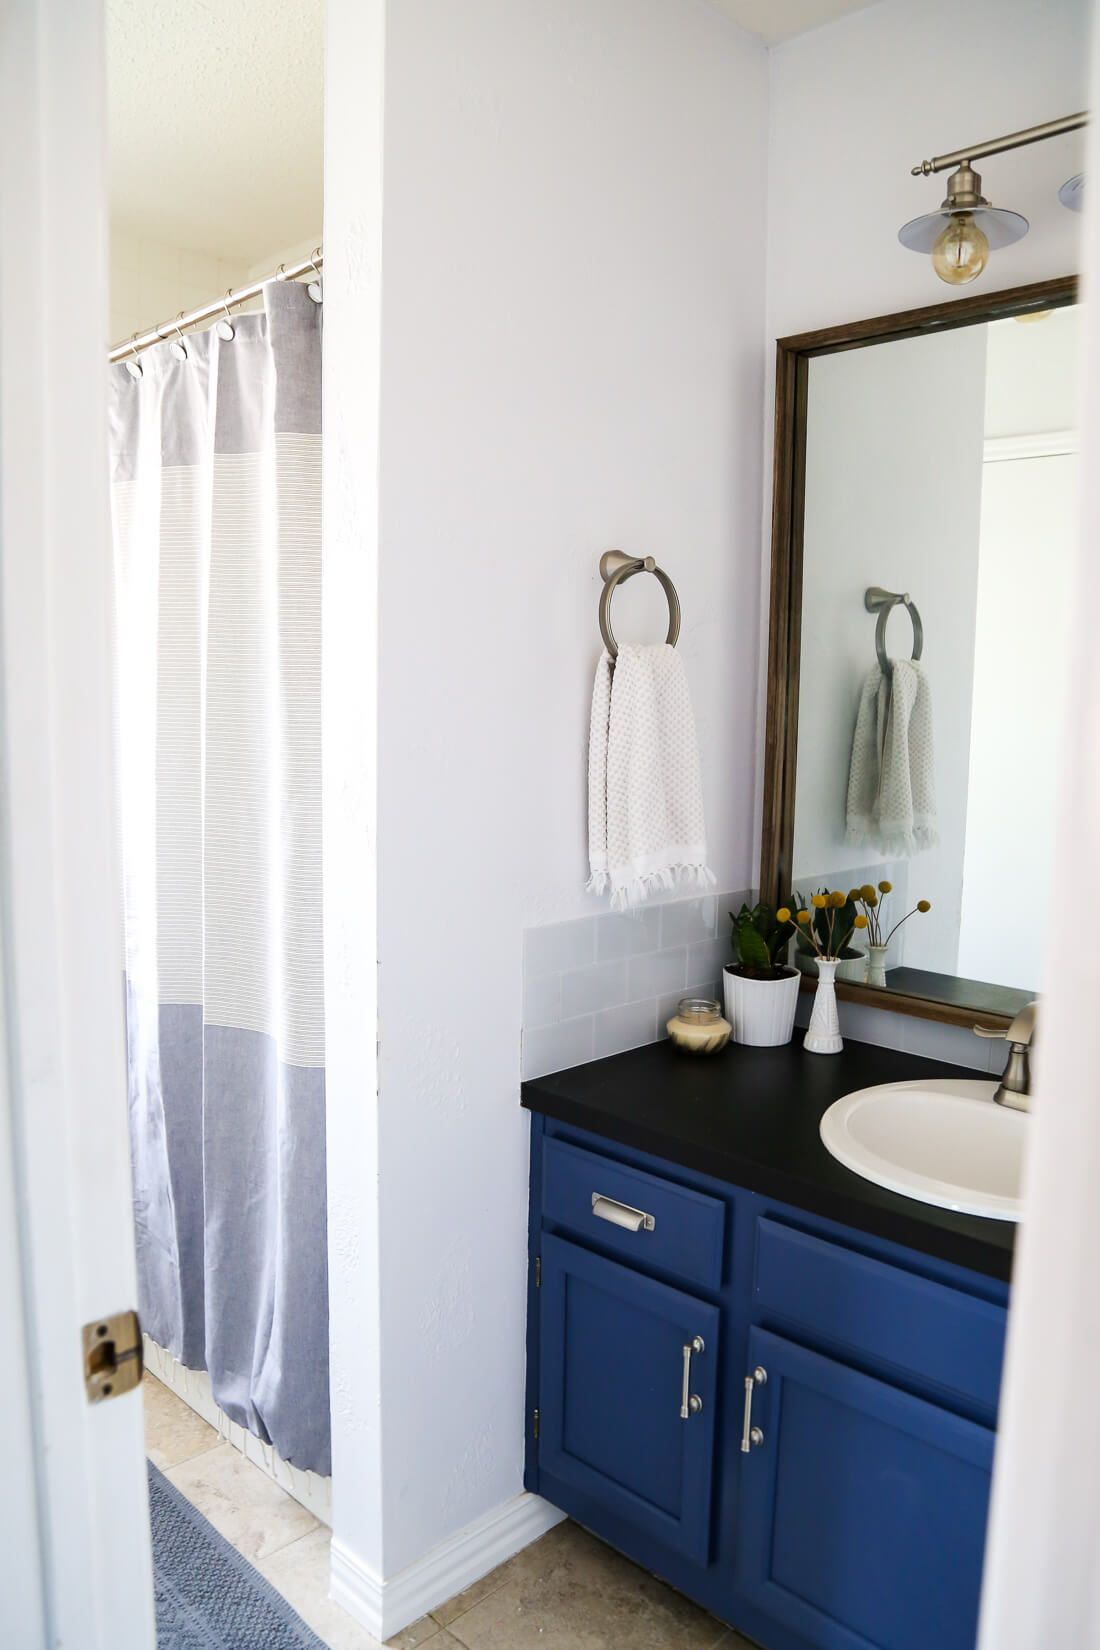 Bathroom updates you can make in a weekend